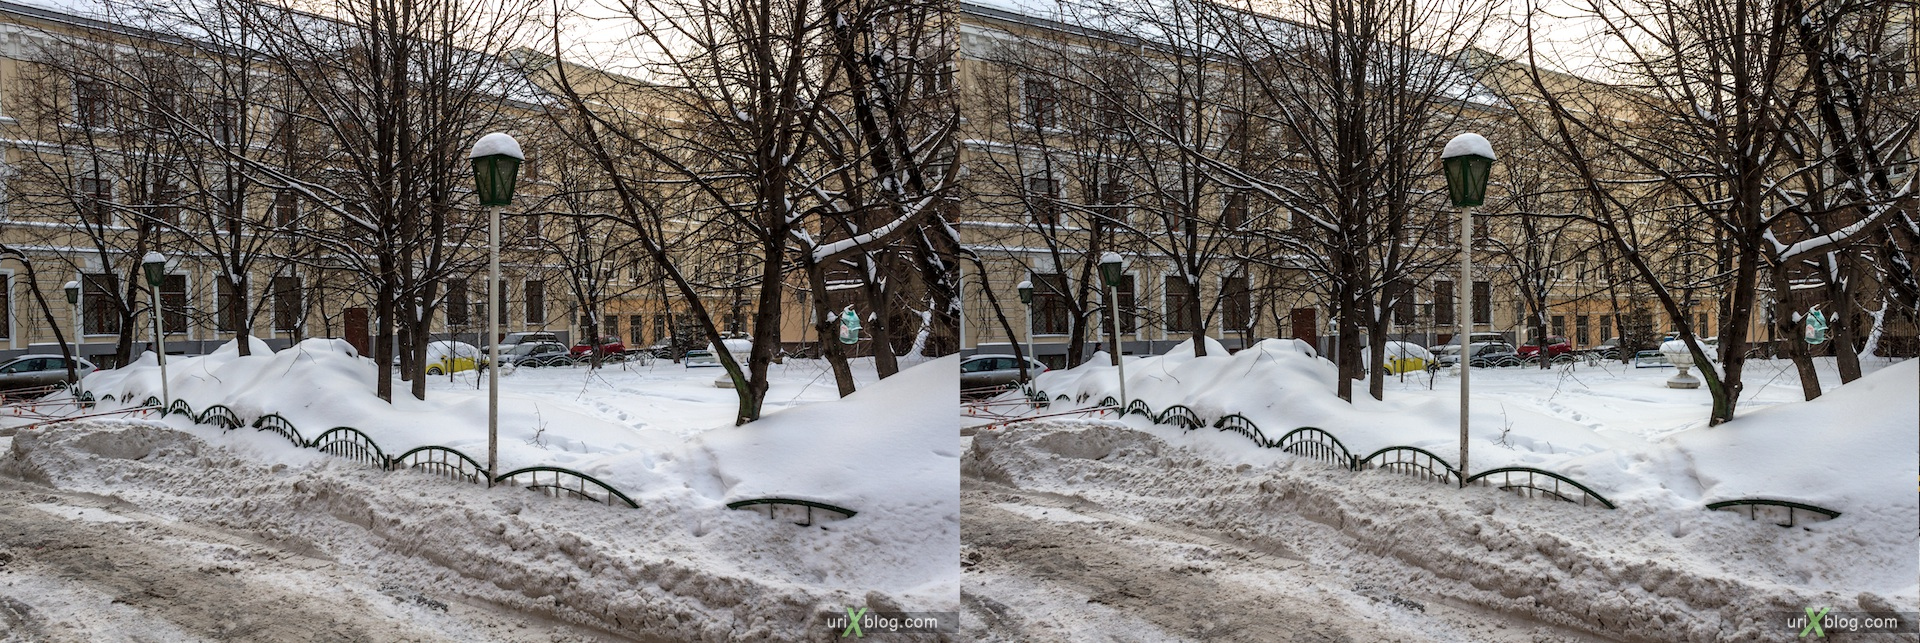 2013, Moscow, street, snow, winter, city, Russia, 3D, stereo pair, cross-eyed, crossview, cross view stereo pair